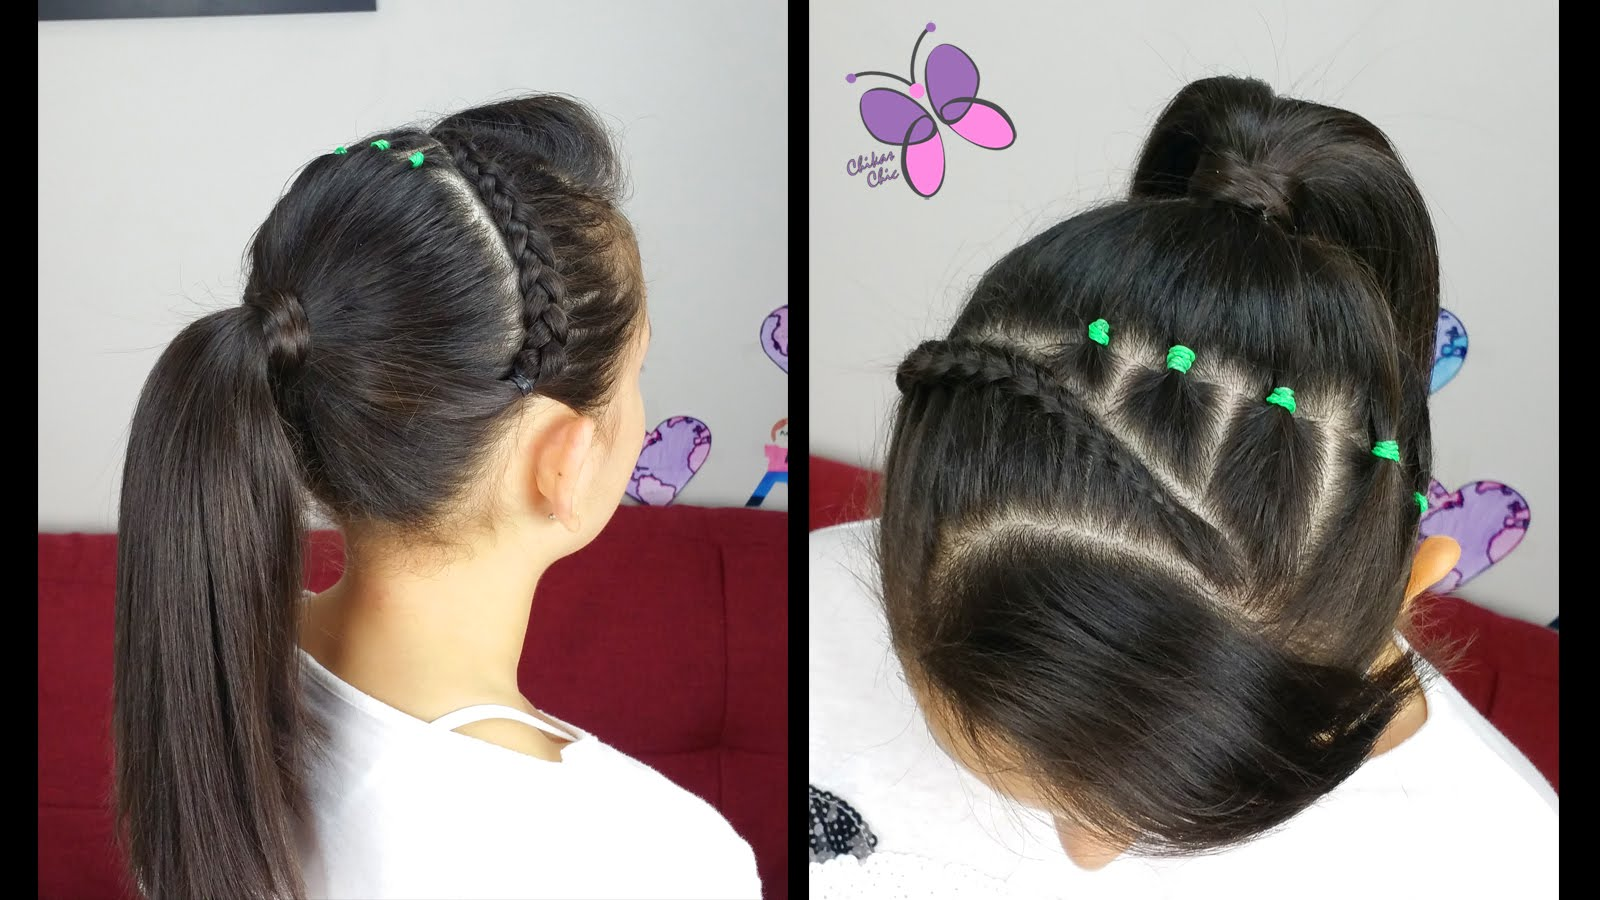 BraidElastics-Headband-Easy-Hairstyles-Hairstyles-for-Short-and-Long-Hair